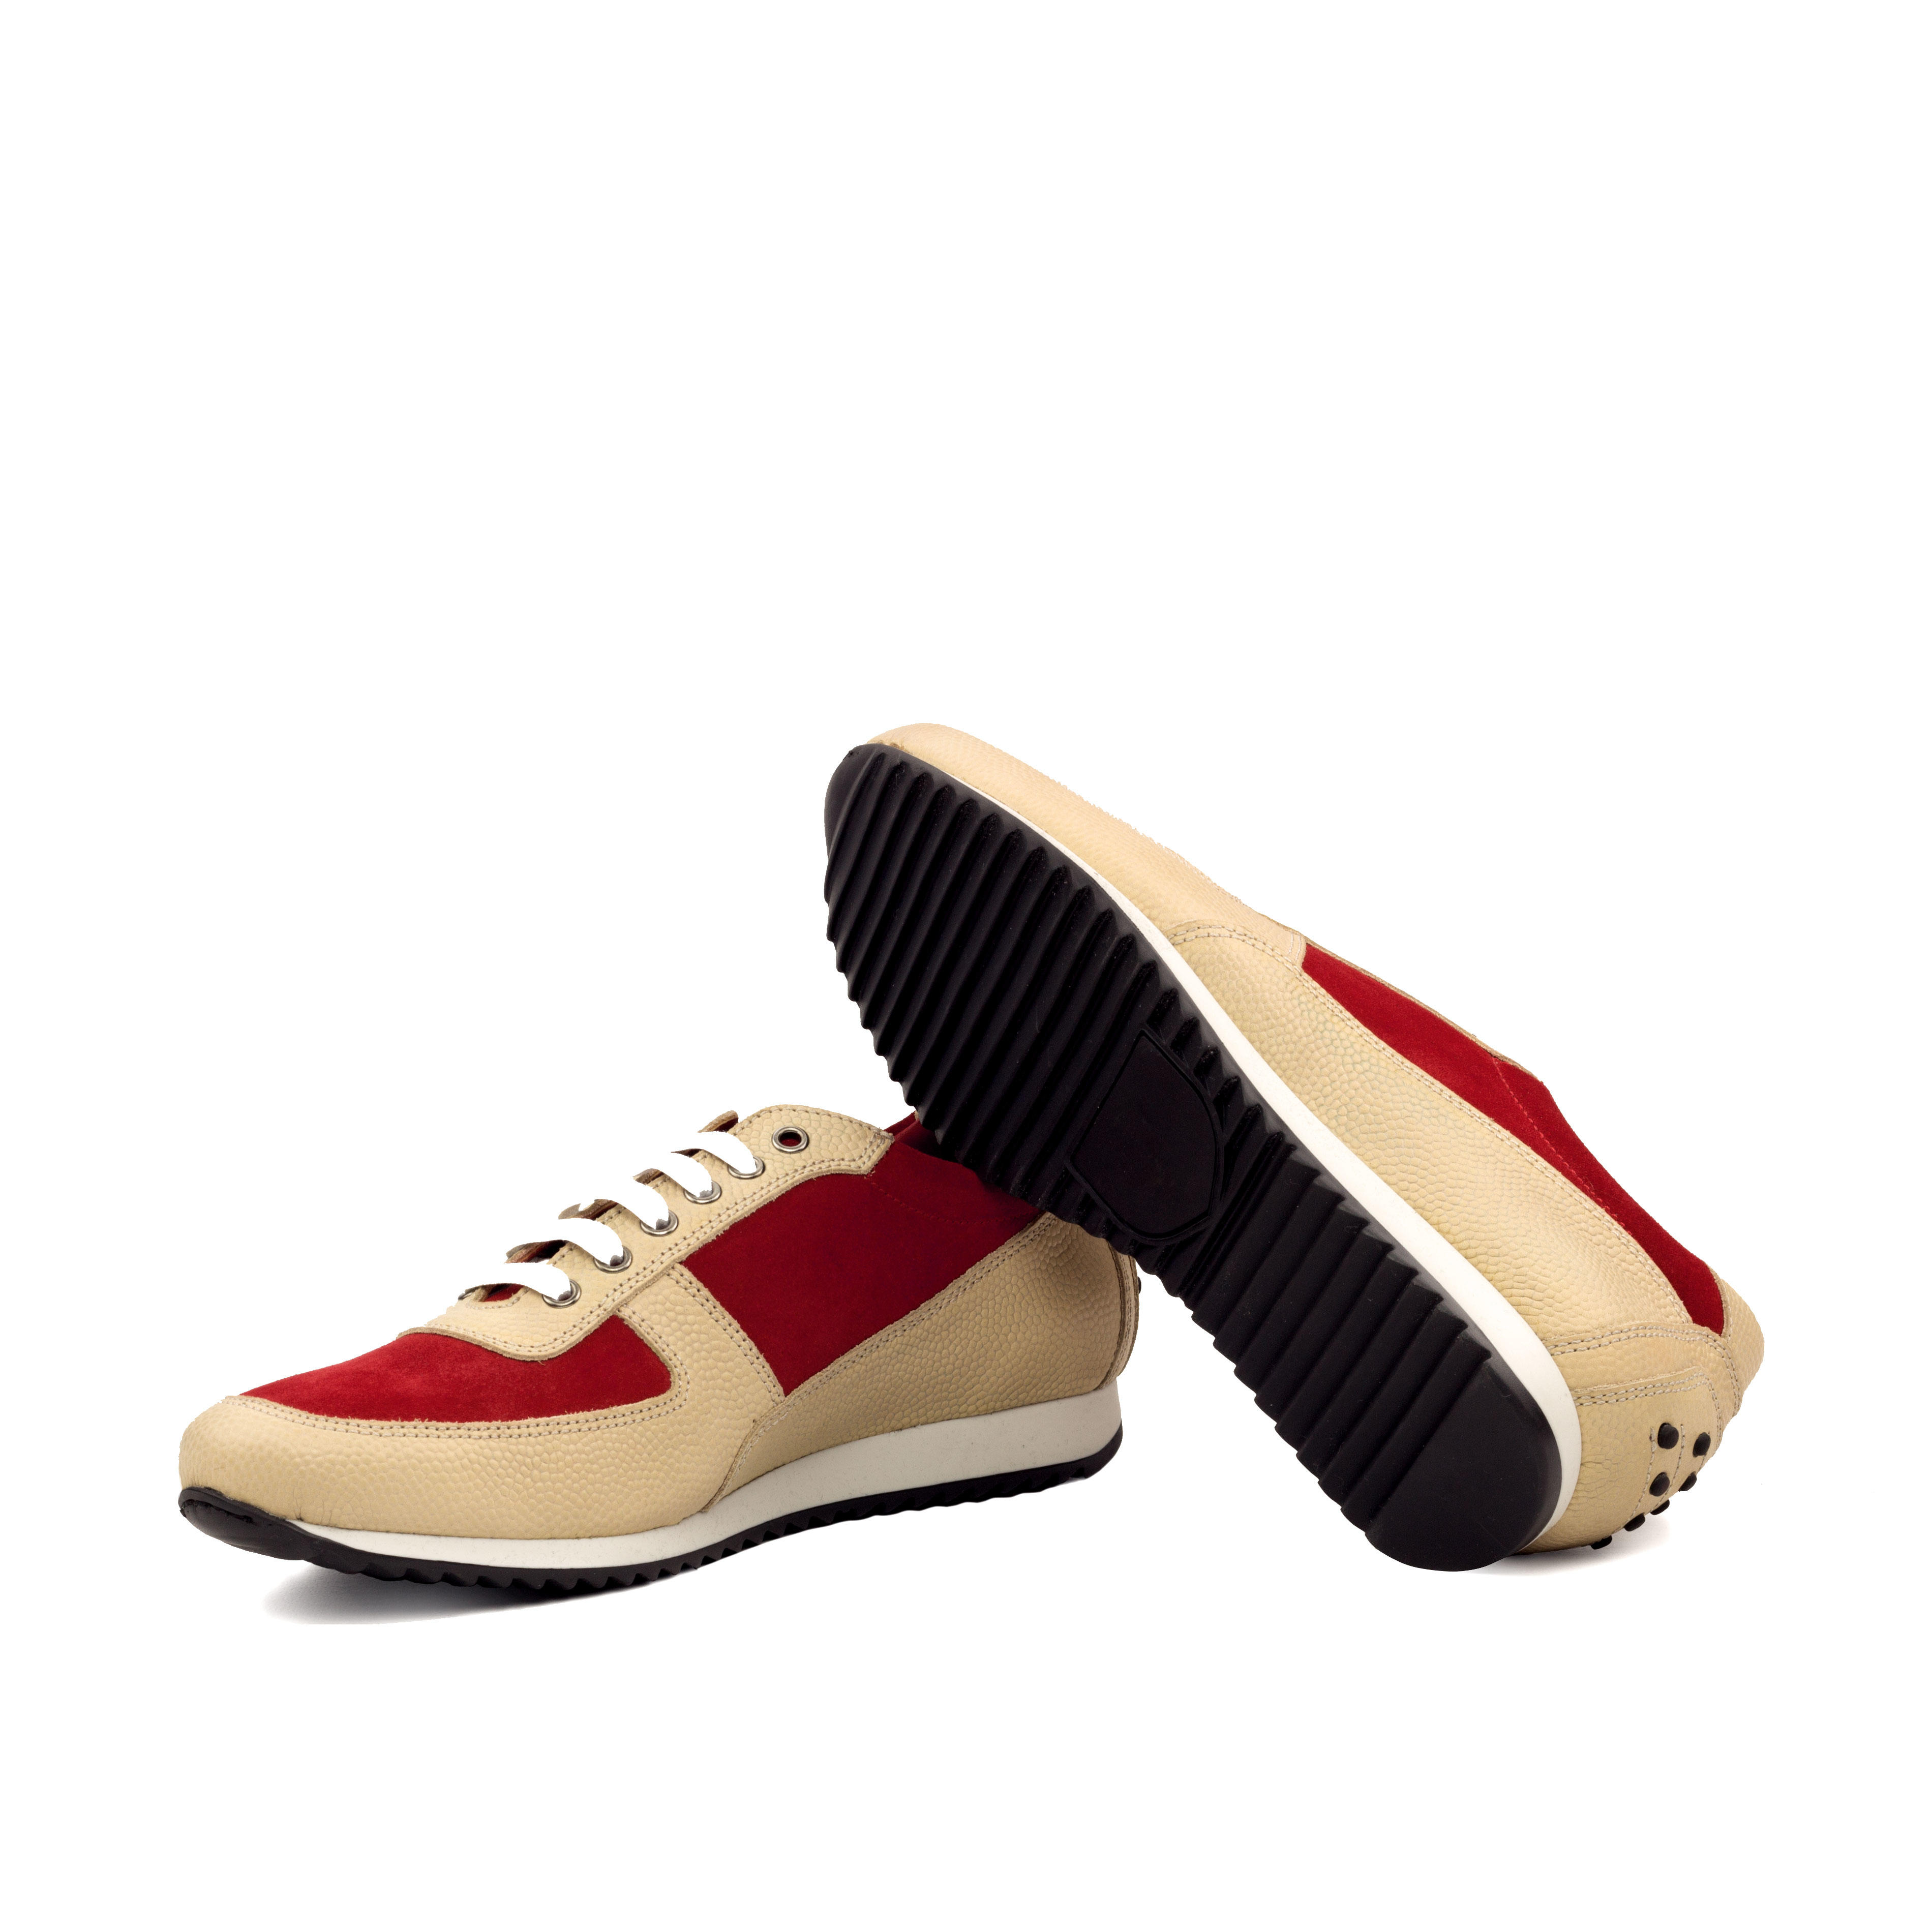 MANOR OF LONDON 'The Runner' Fawn Pebble Grain & Red Suede Trainer Luxury Custom Initials Monogrammed Bottom Side View